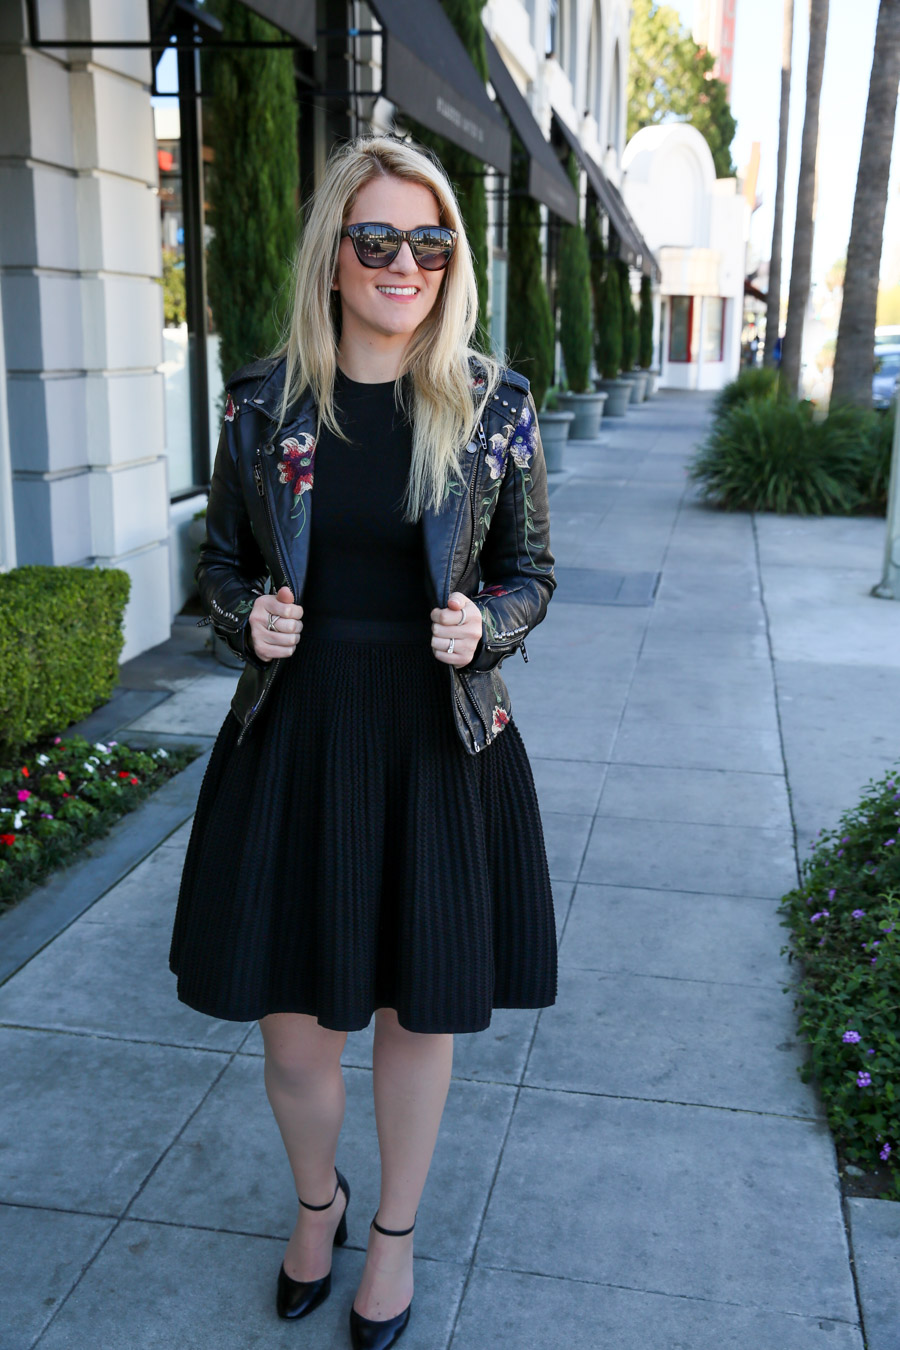 Embroidered Leather Jacket and Dress Outfit for women. Spring and Fall Outfit ideas for women. How to wear a little black dress with a fun leather jacket.